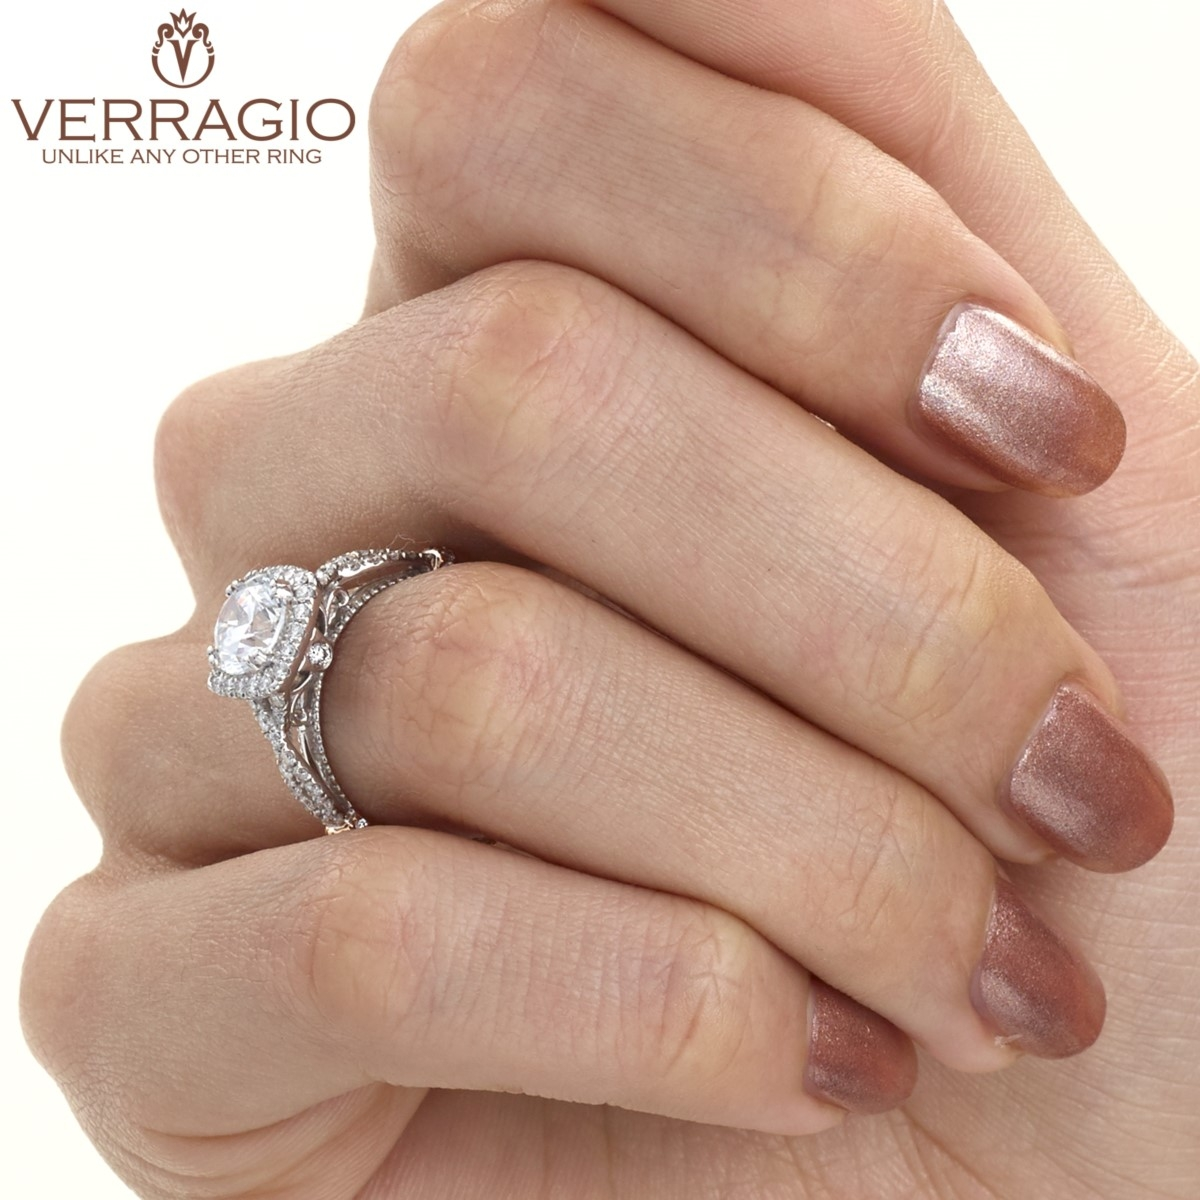 Verragio Parisian-DL106CU 14 Karat Engagement Ring Alternative View 6